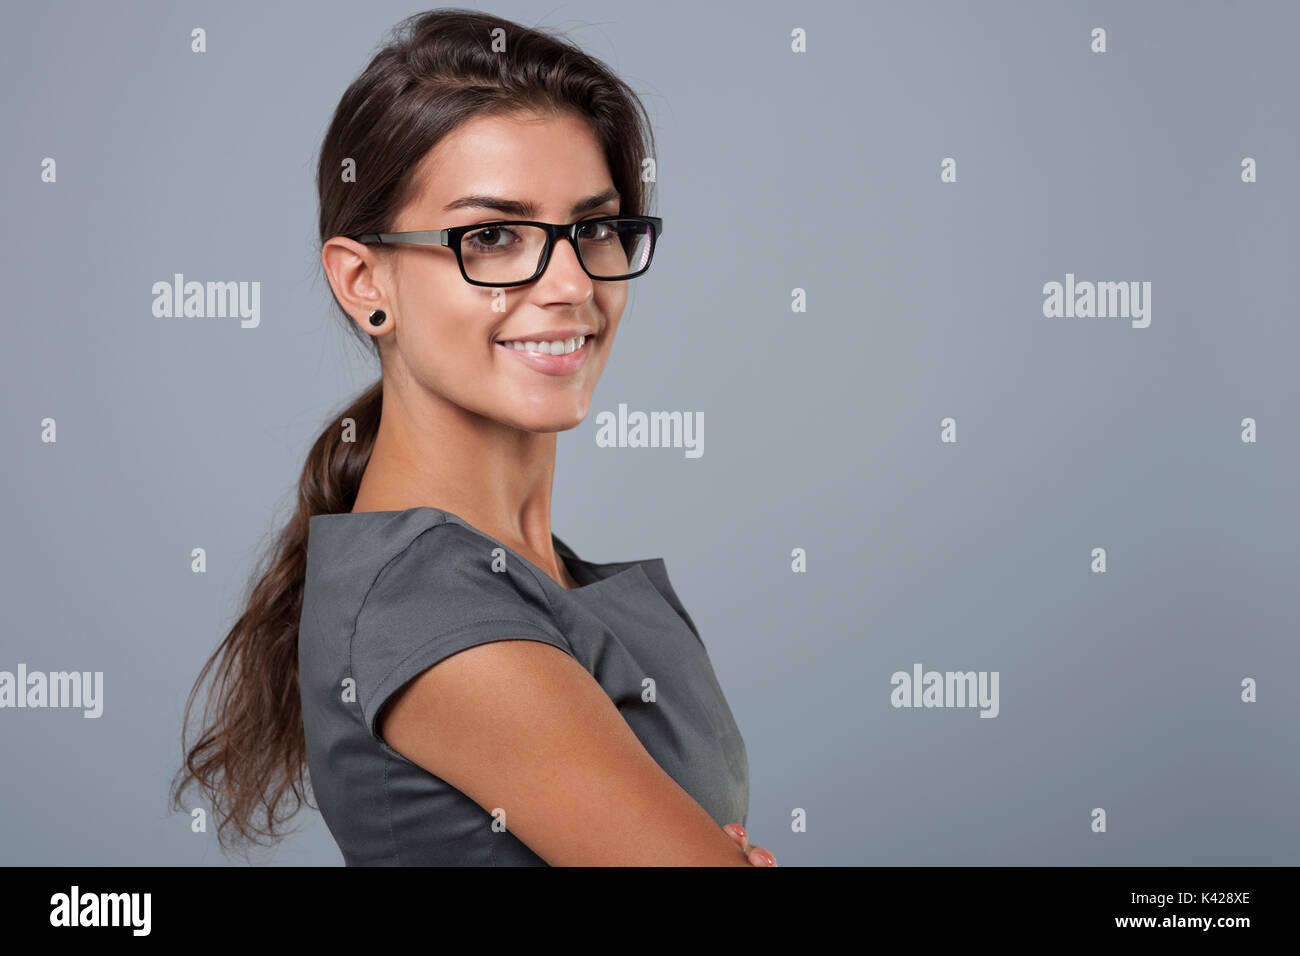 She's brimming of self confidence - Stock Image